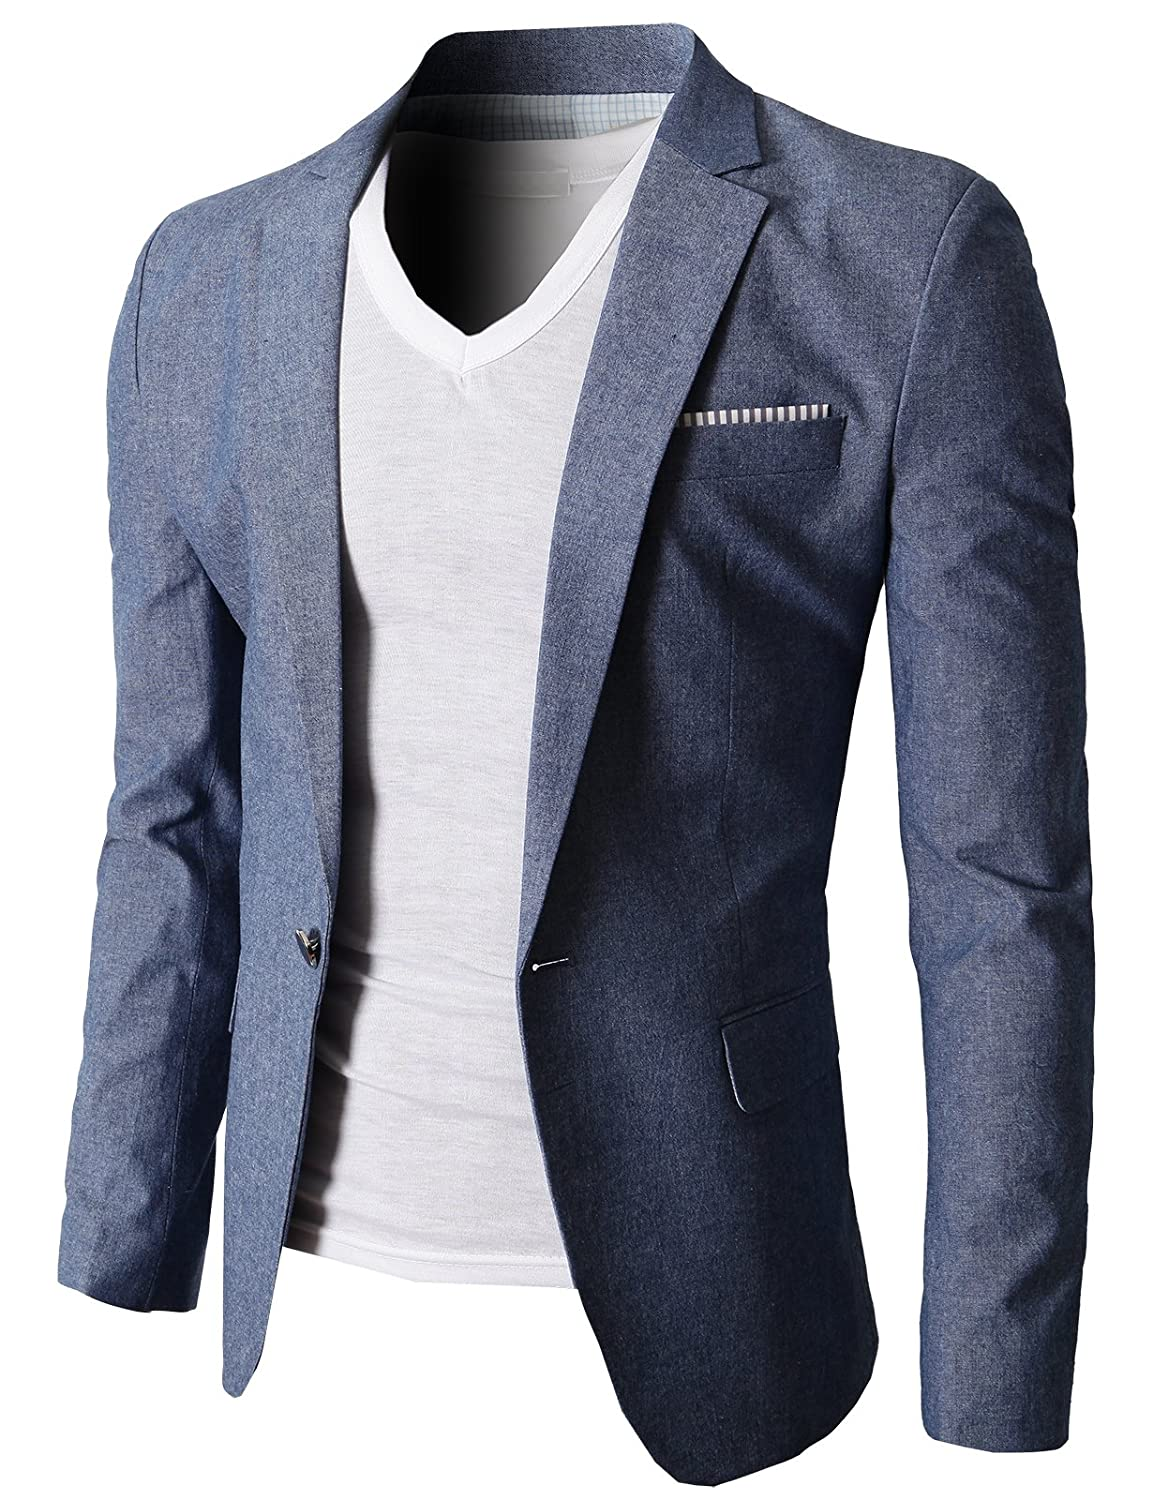 H2H Mens Fashion Slim Fit Single Button Flap Pockets Linen Blazer